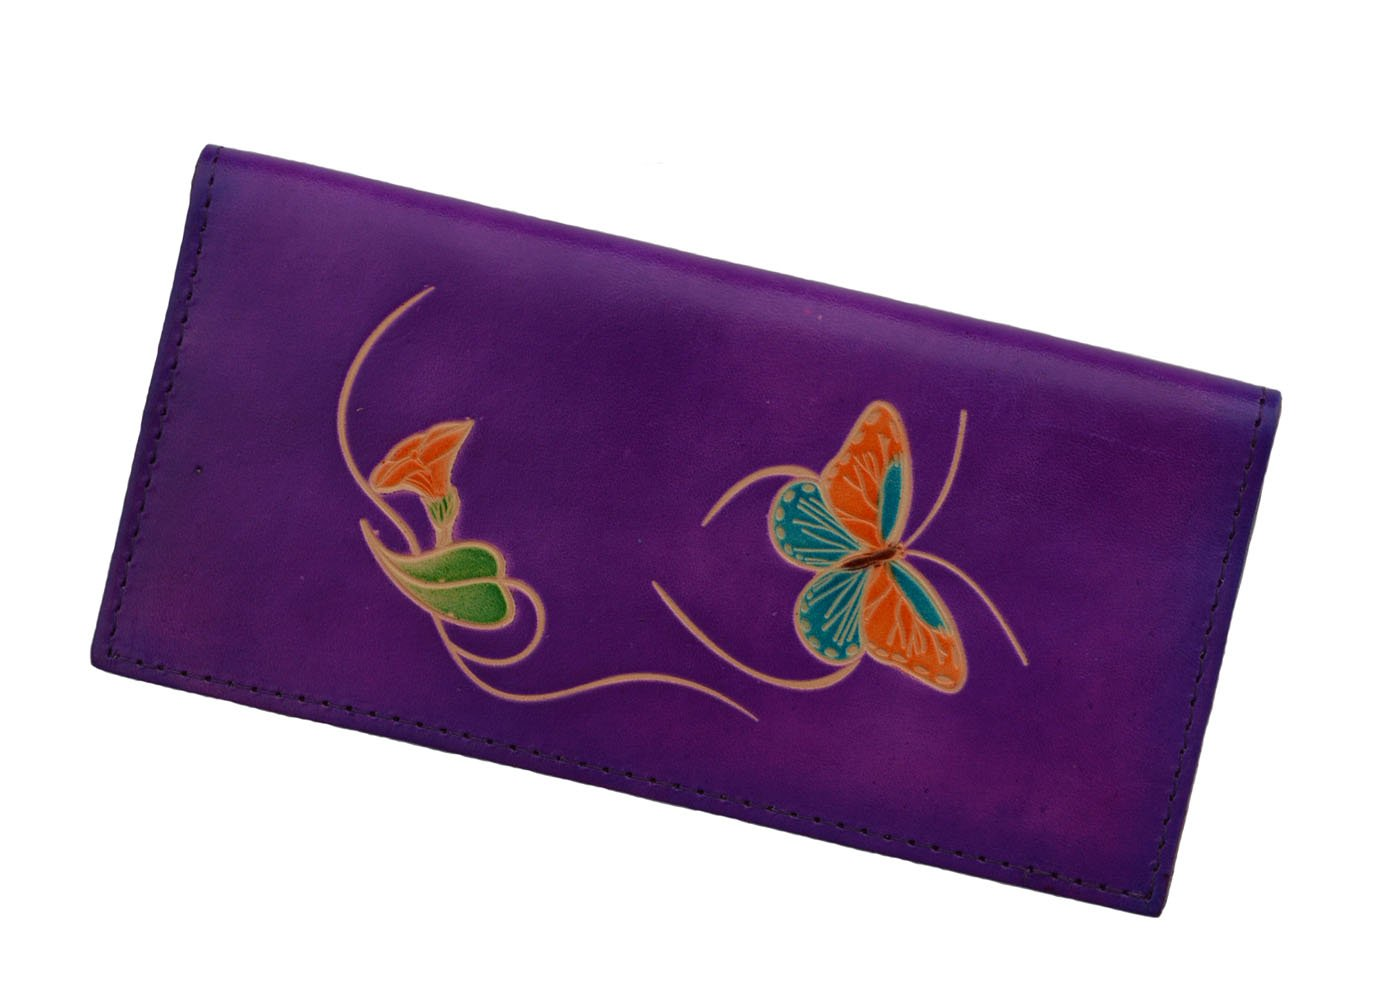 Real Leather Check Book Cover, a Butterfly and Flower Patterns Embossed on Both Side with Different Color(s). (Purple)